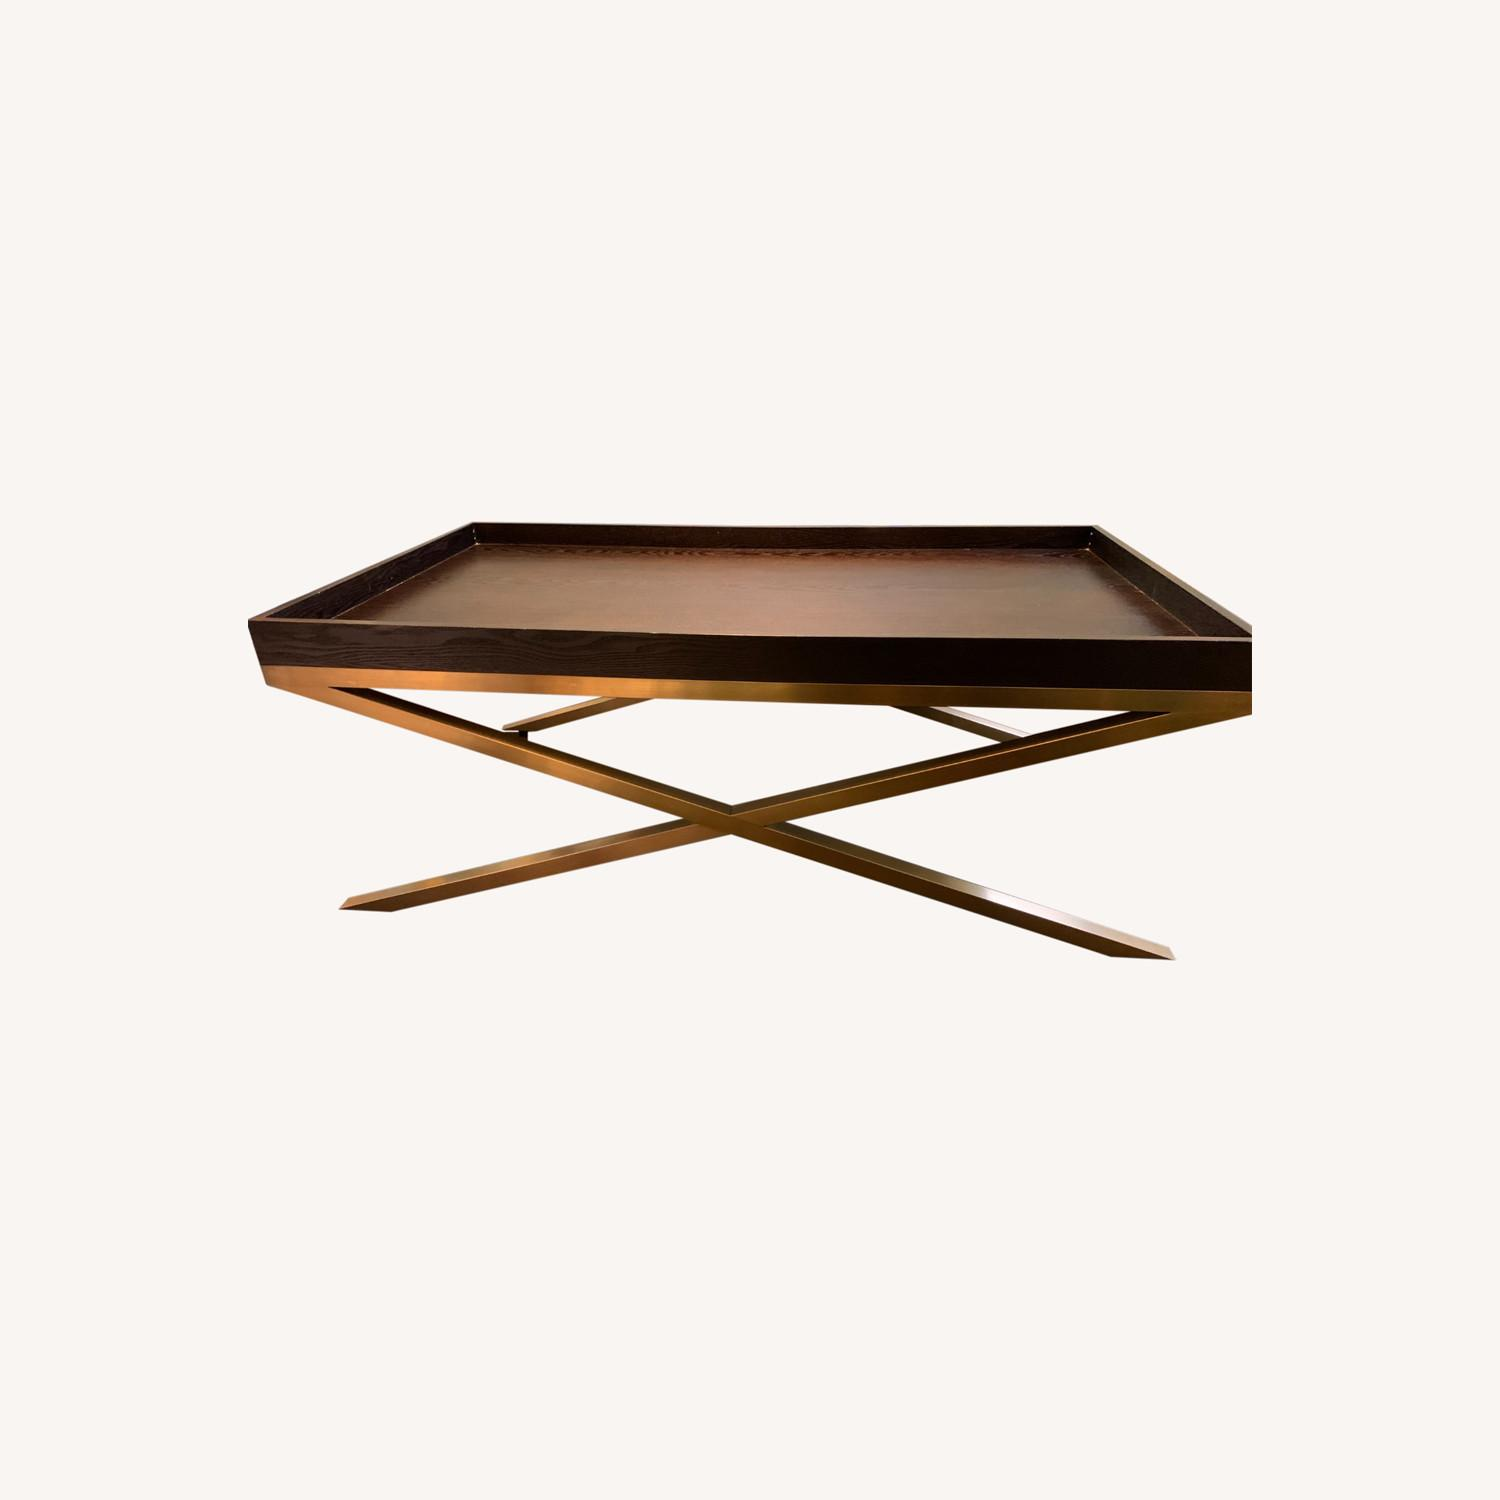 Vanguard Wood & Brass Coffee/Cocktail Table - image-0